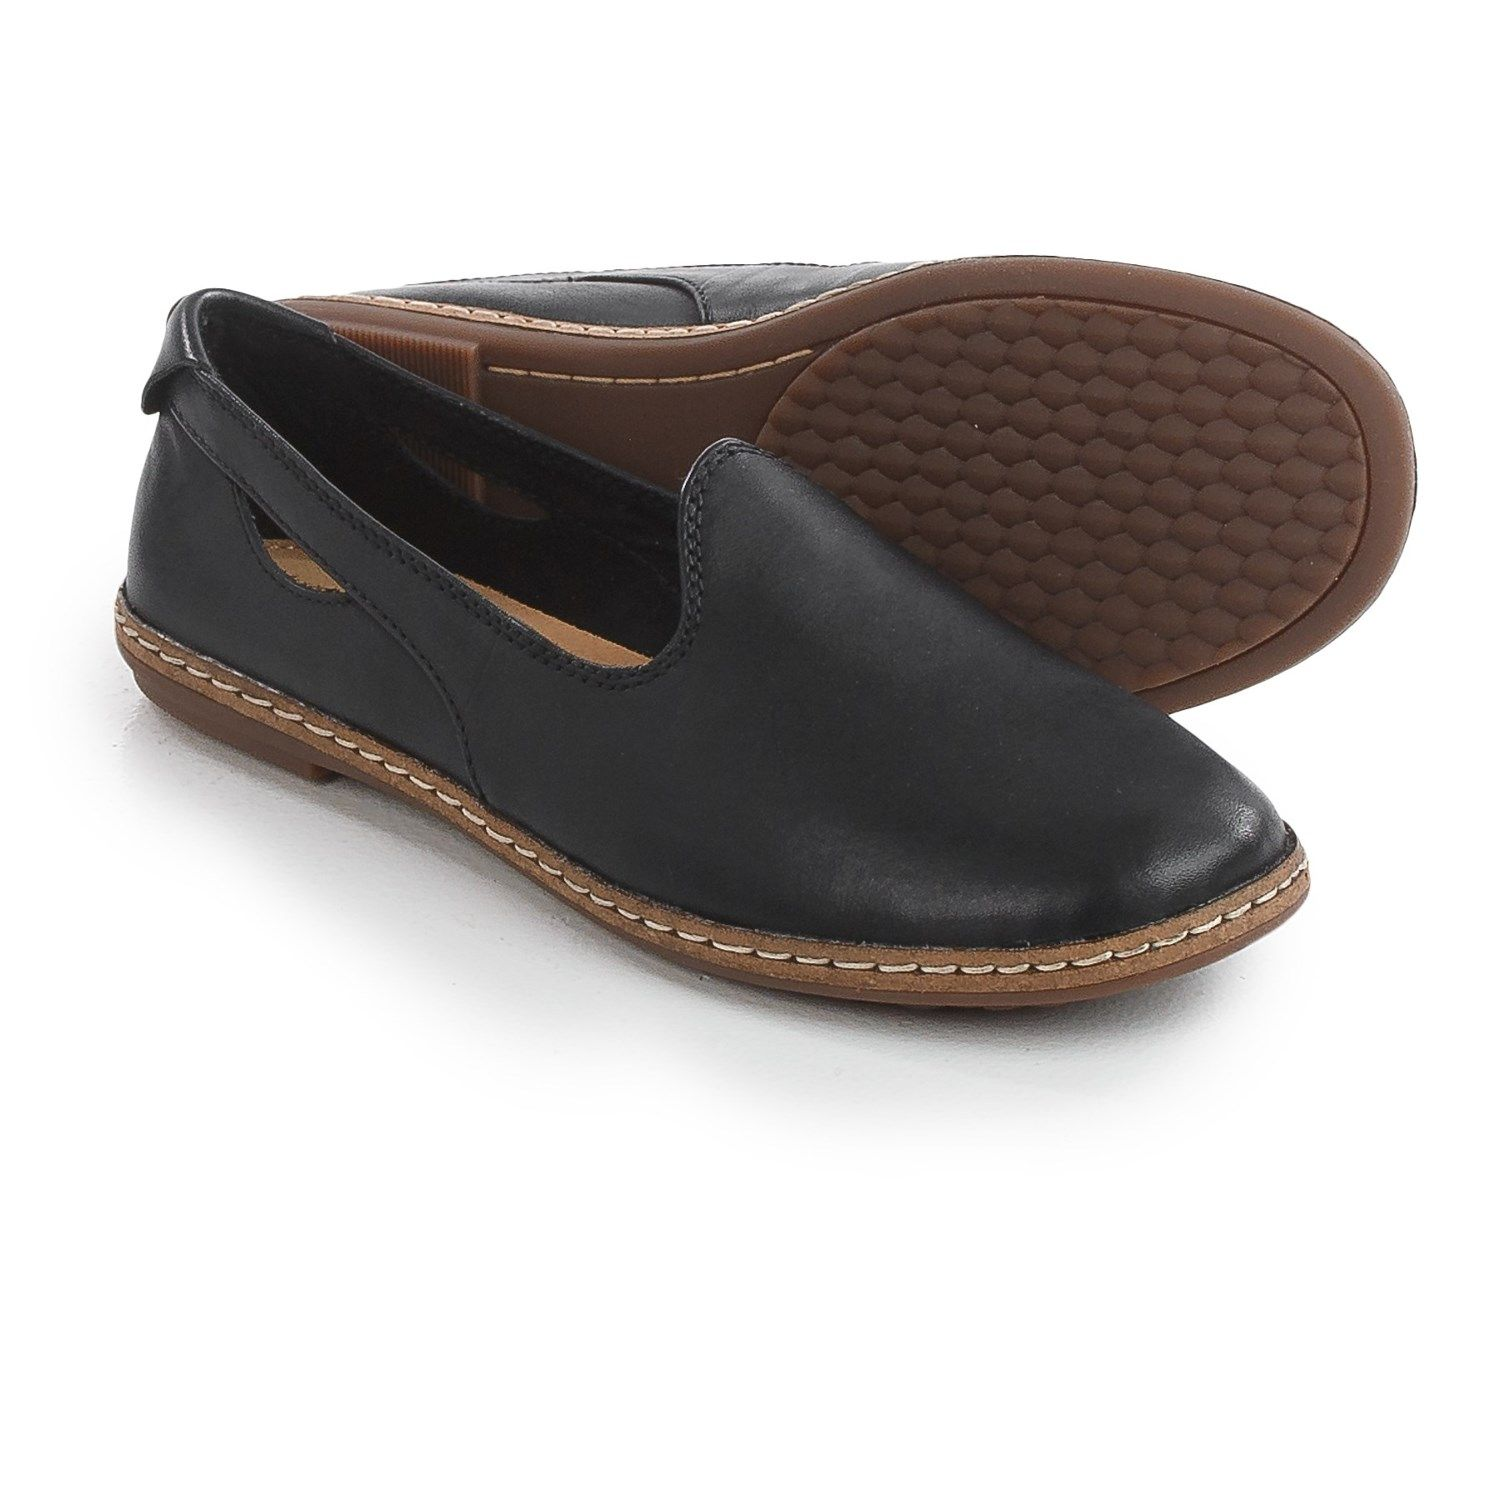 Hush Puppies Sebeka Piper Shoes (For Women) - Save 49%